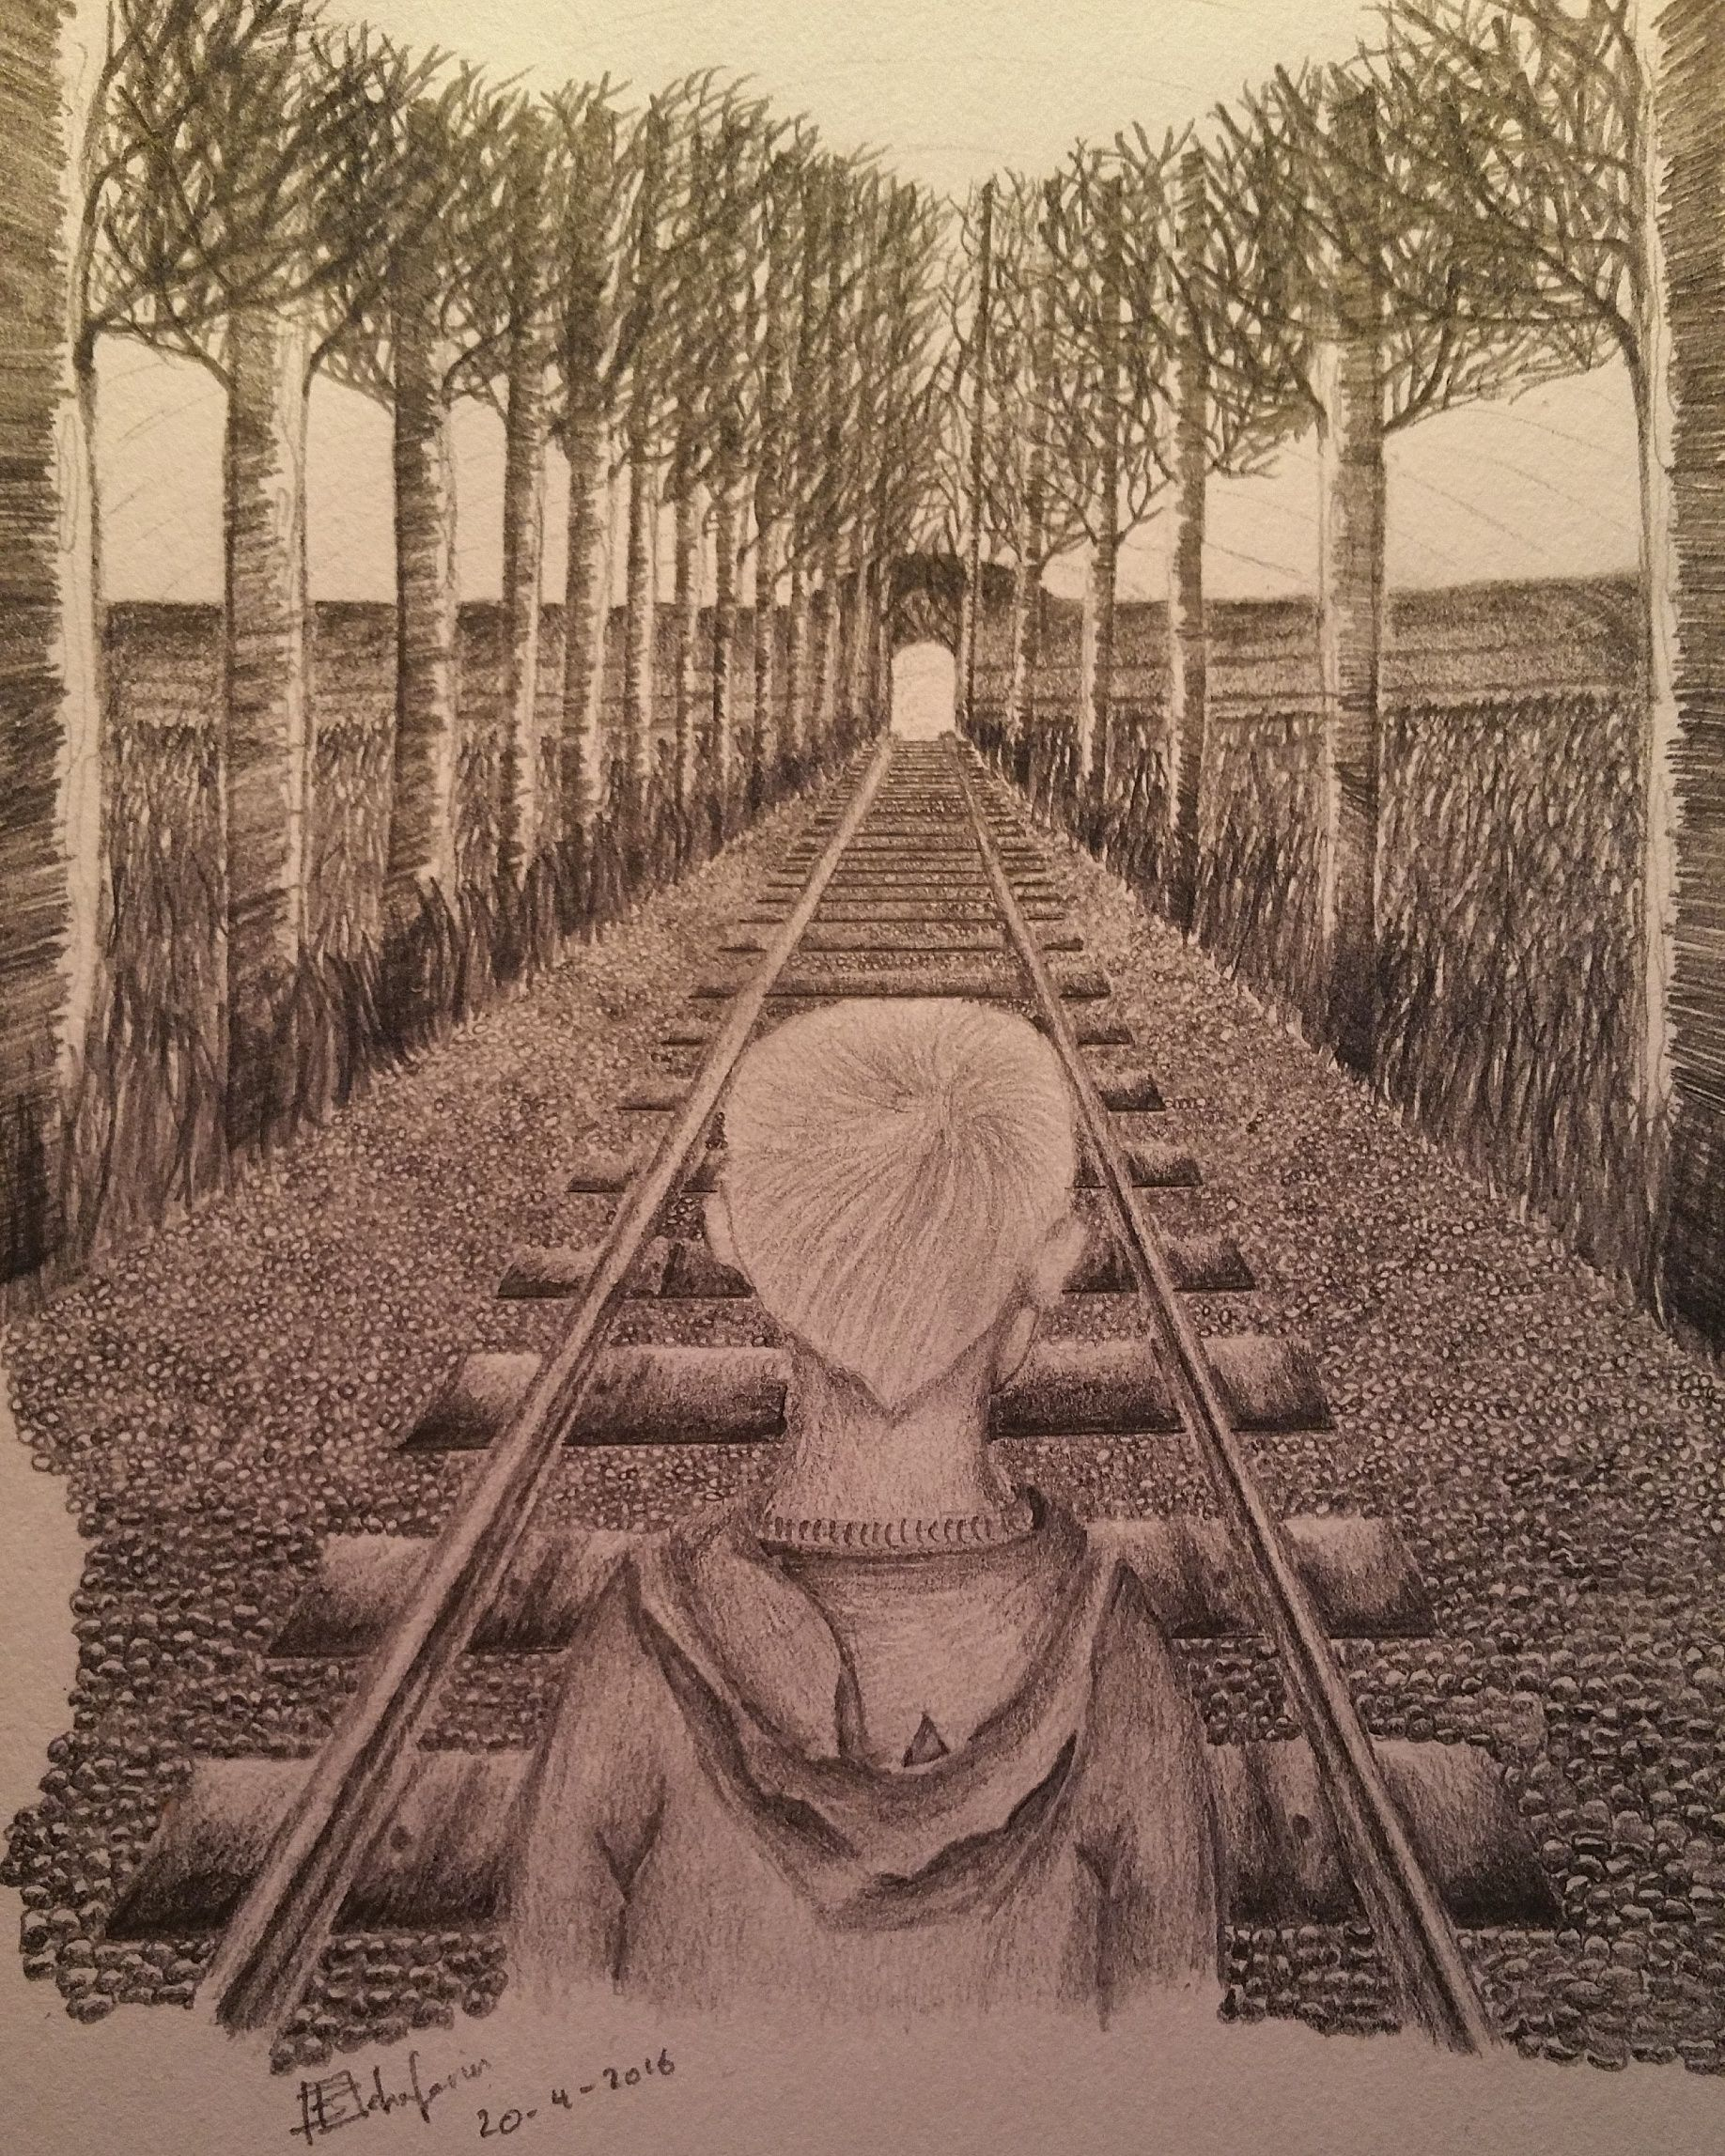 Theme orphans arts sketch pencil railway trees grass branches pennyappeal orphan competition artcompetition child shading interpretation